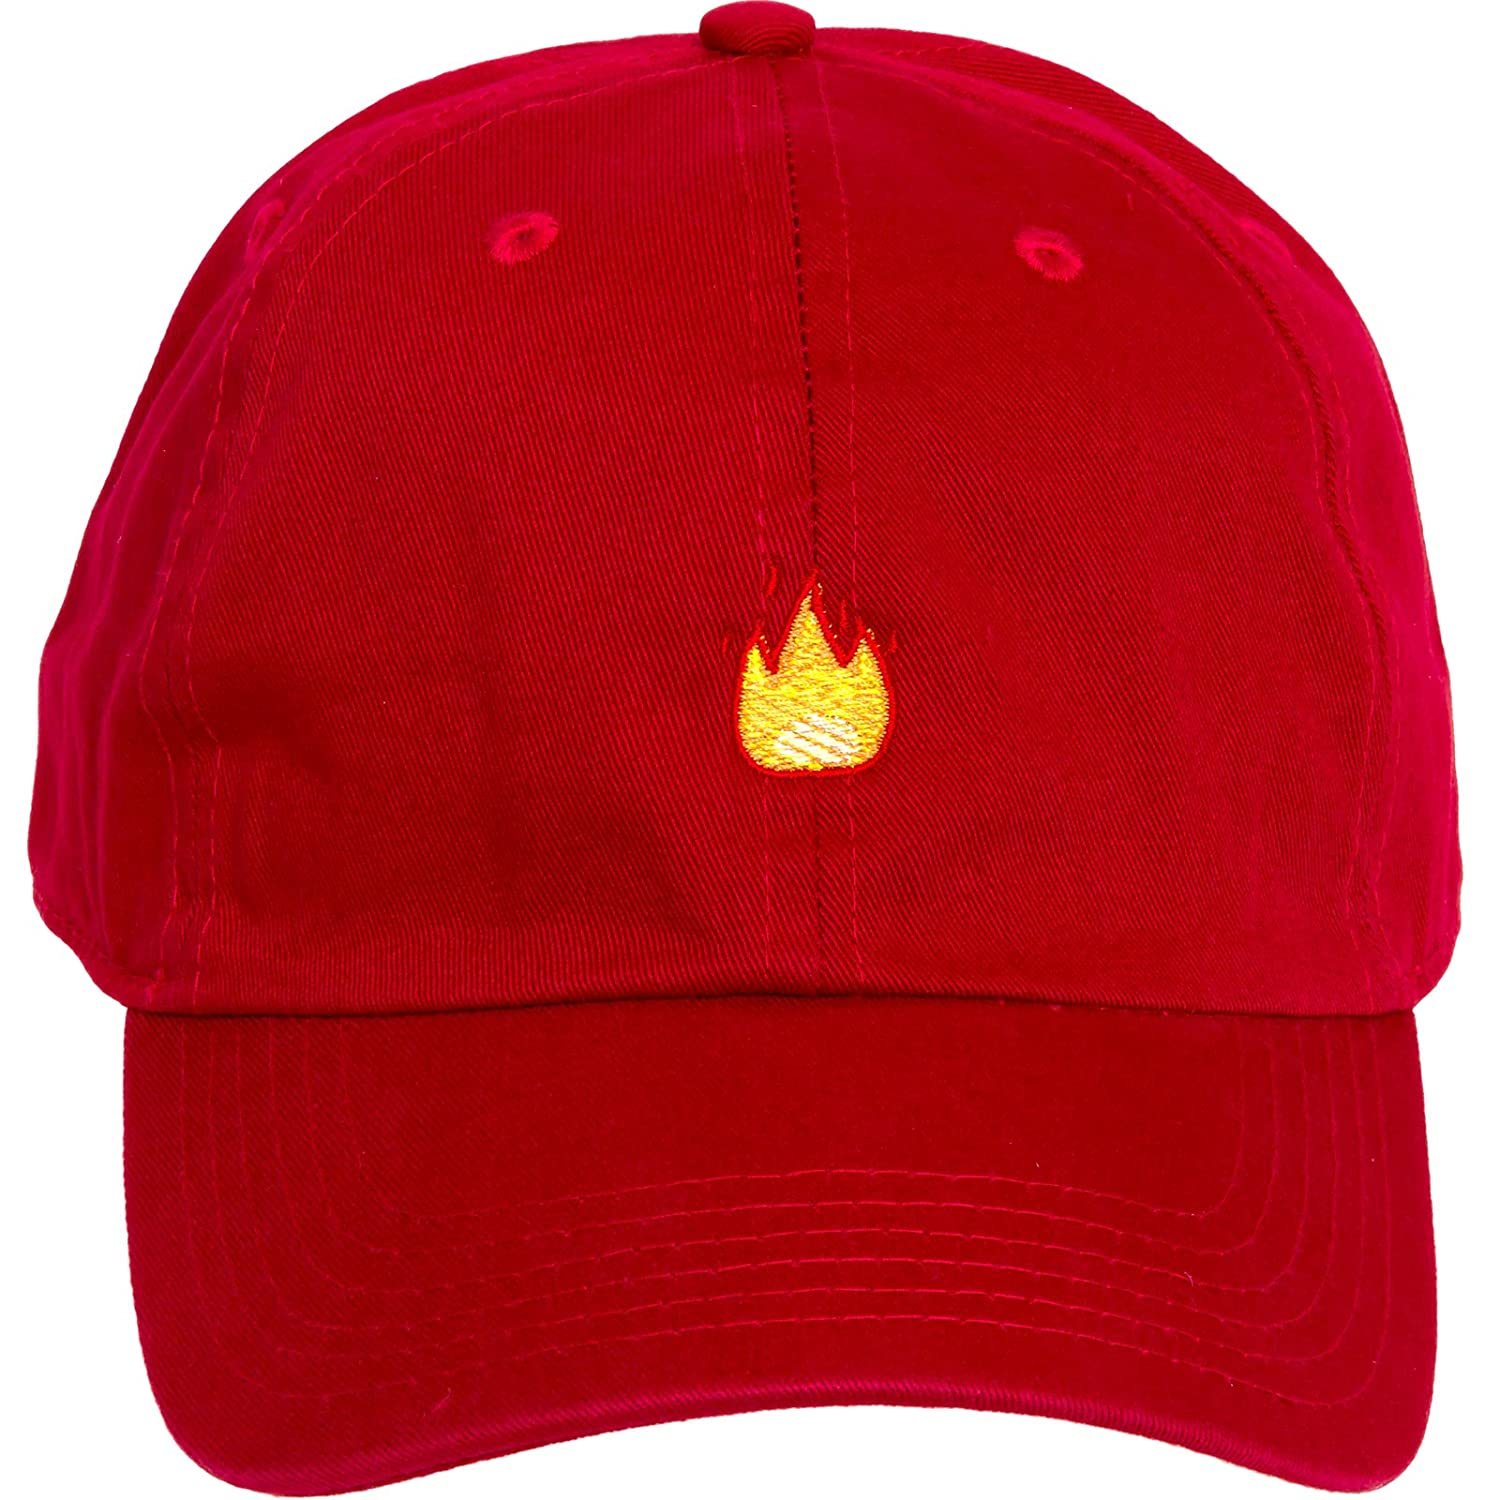 dc63b375456 Amazon.com   Newhattan Flame Emoji 100% Cotton Adjustable Dad Hat   Sports    Outdoors